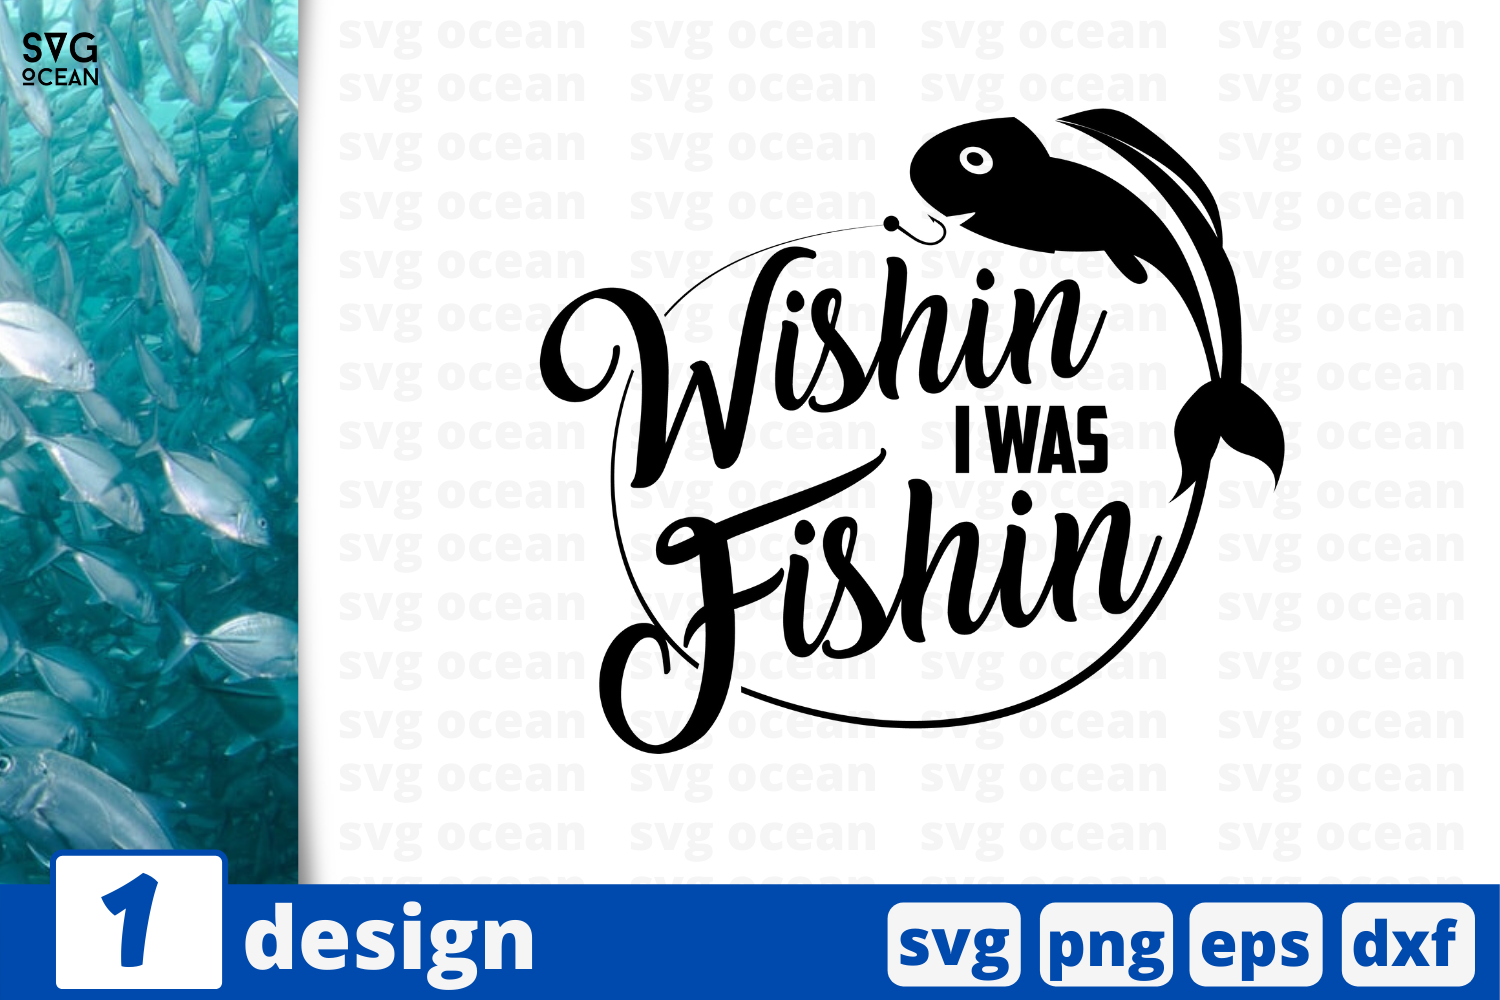 Download Free Wishin I Was Fishin Graphic By Svgocean Creative Fabrica for Cricut Explore, Silhouette and other cutting machines.